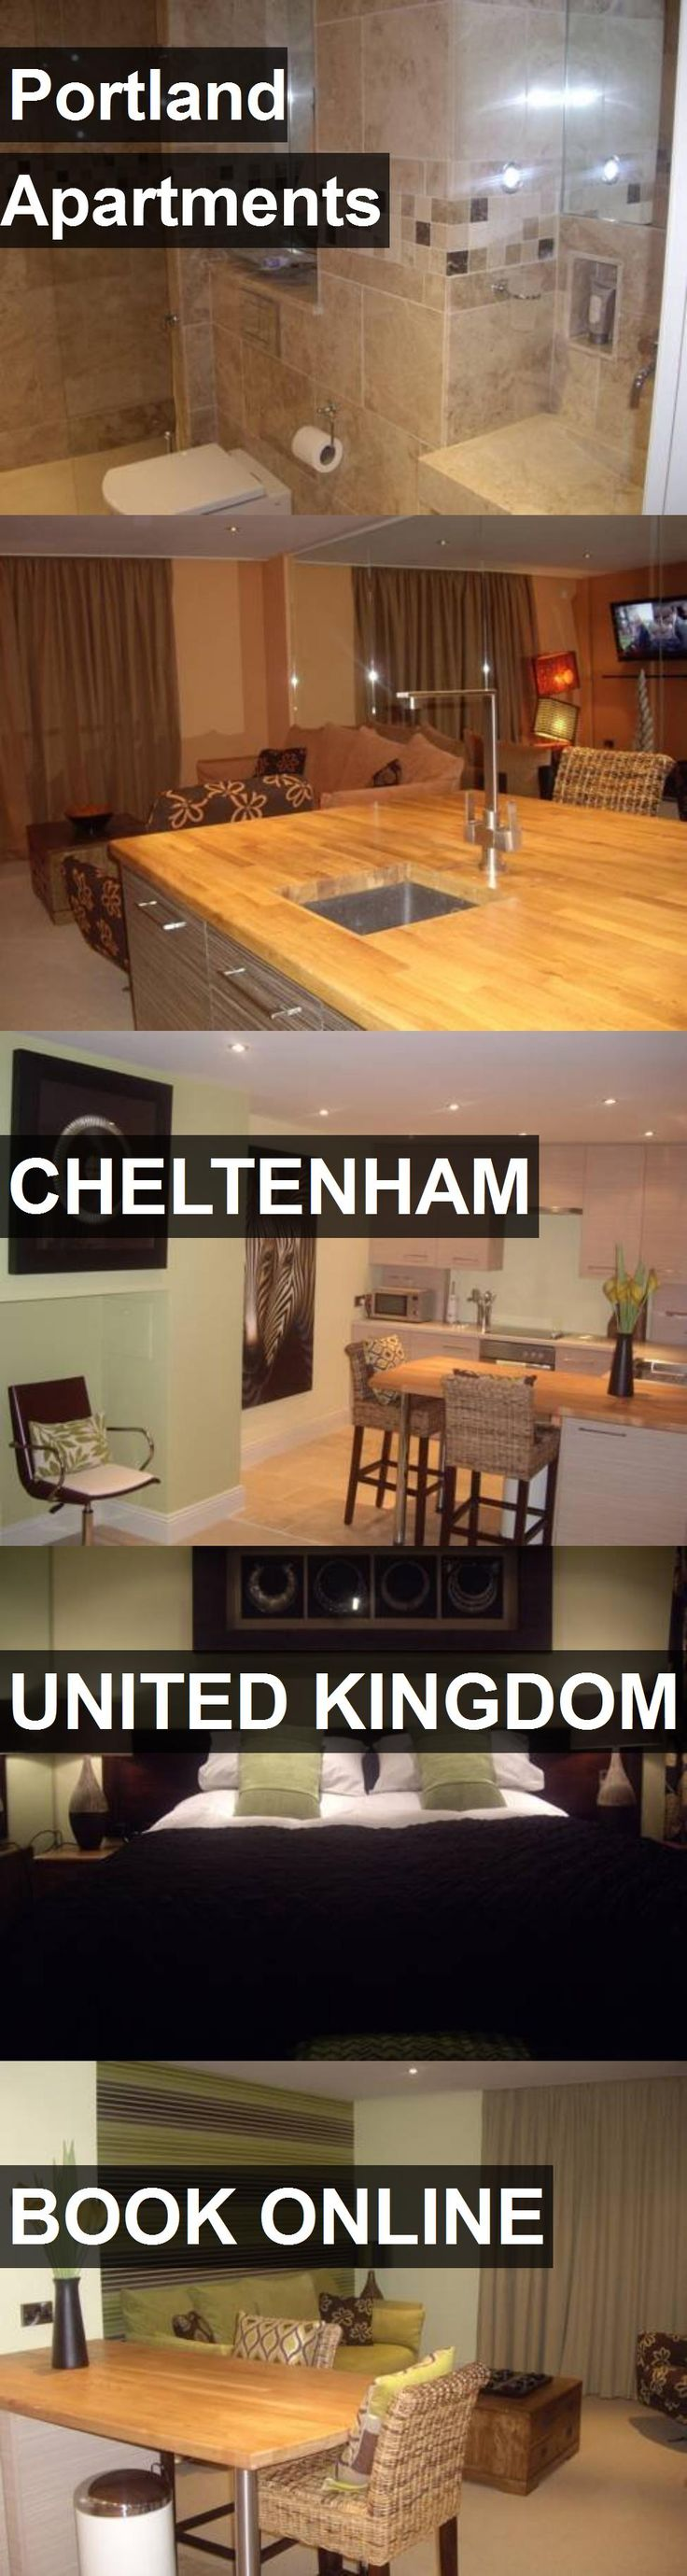 Portland Apartments in Cheltenham, United Kingdom. For more information, photos, reviews and best prices please follow the link. #UnitedKingdom #Cheltenham #travel #vacation #apartment